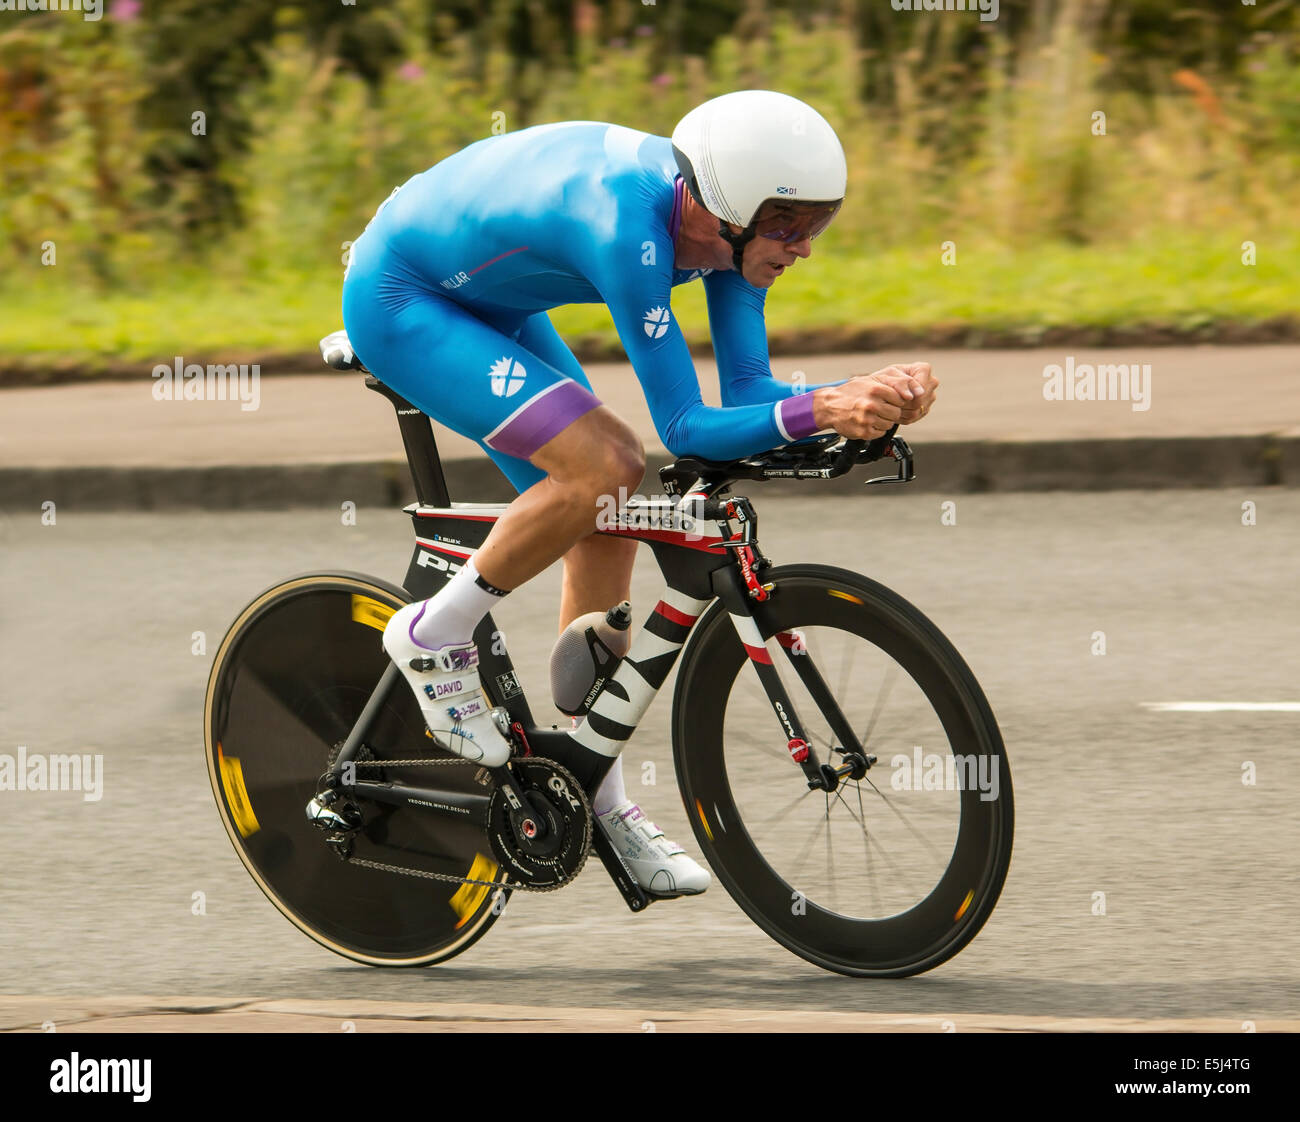 Commonwealth mens cycling time trial - Stock Image